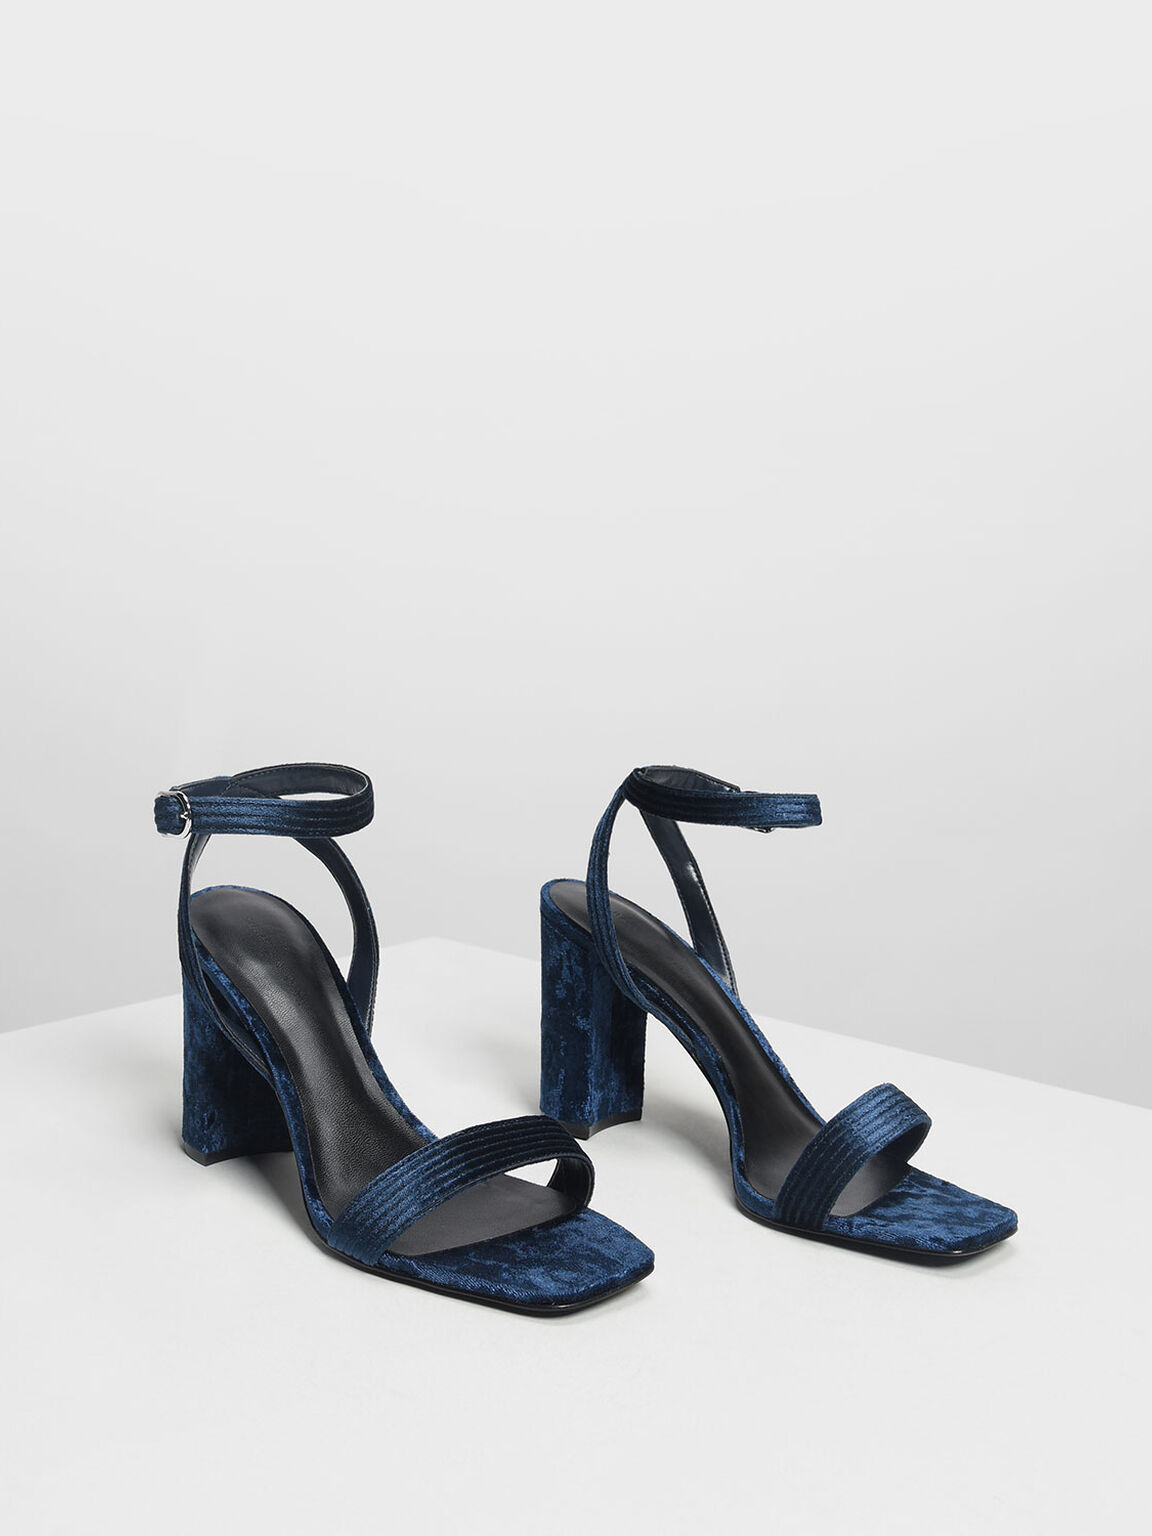 Textured Classic Ankle Strap Heeled Sandals, Dark Blue, hi-res